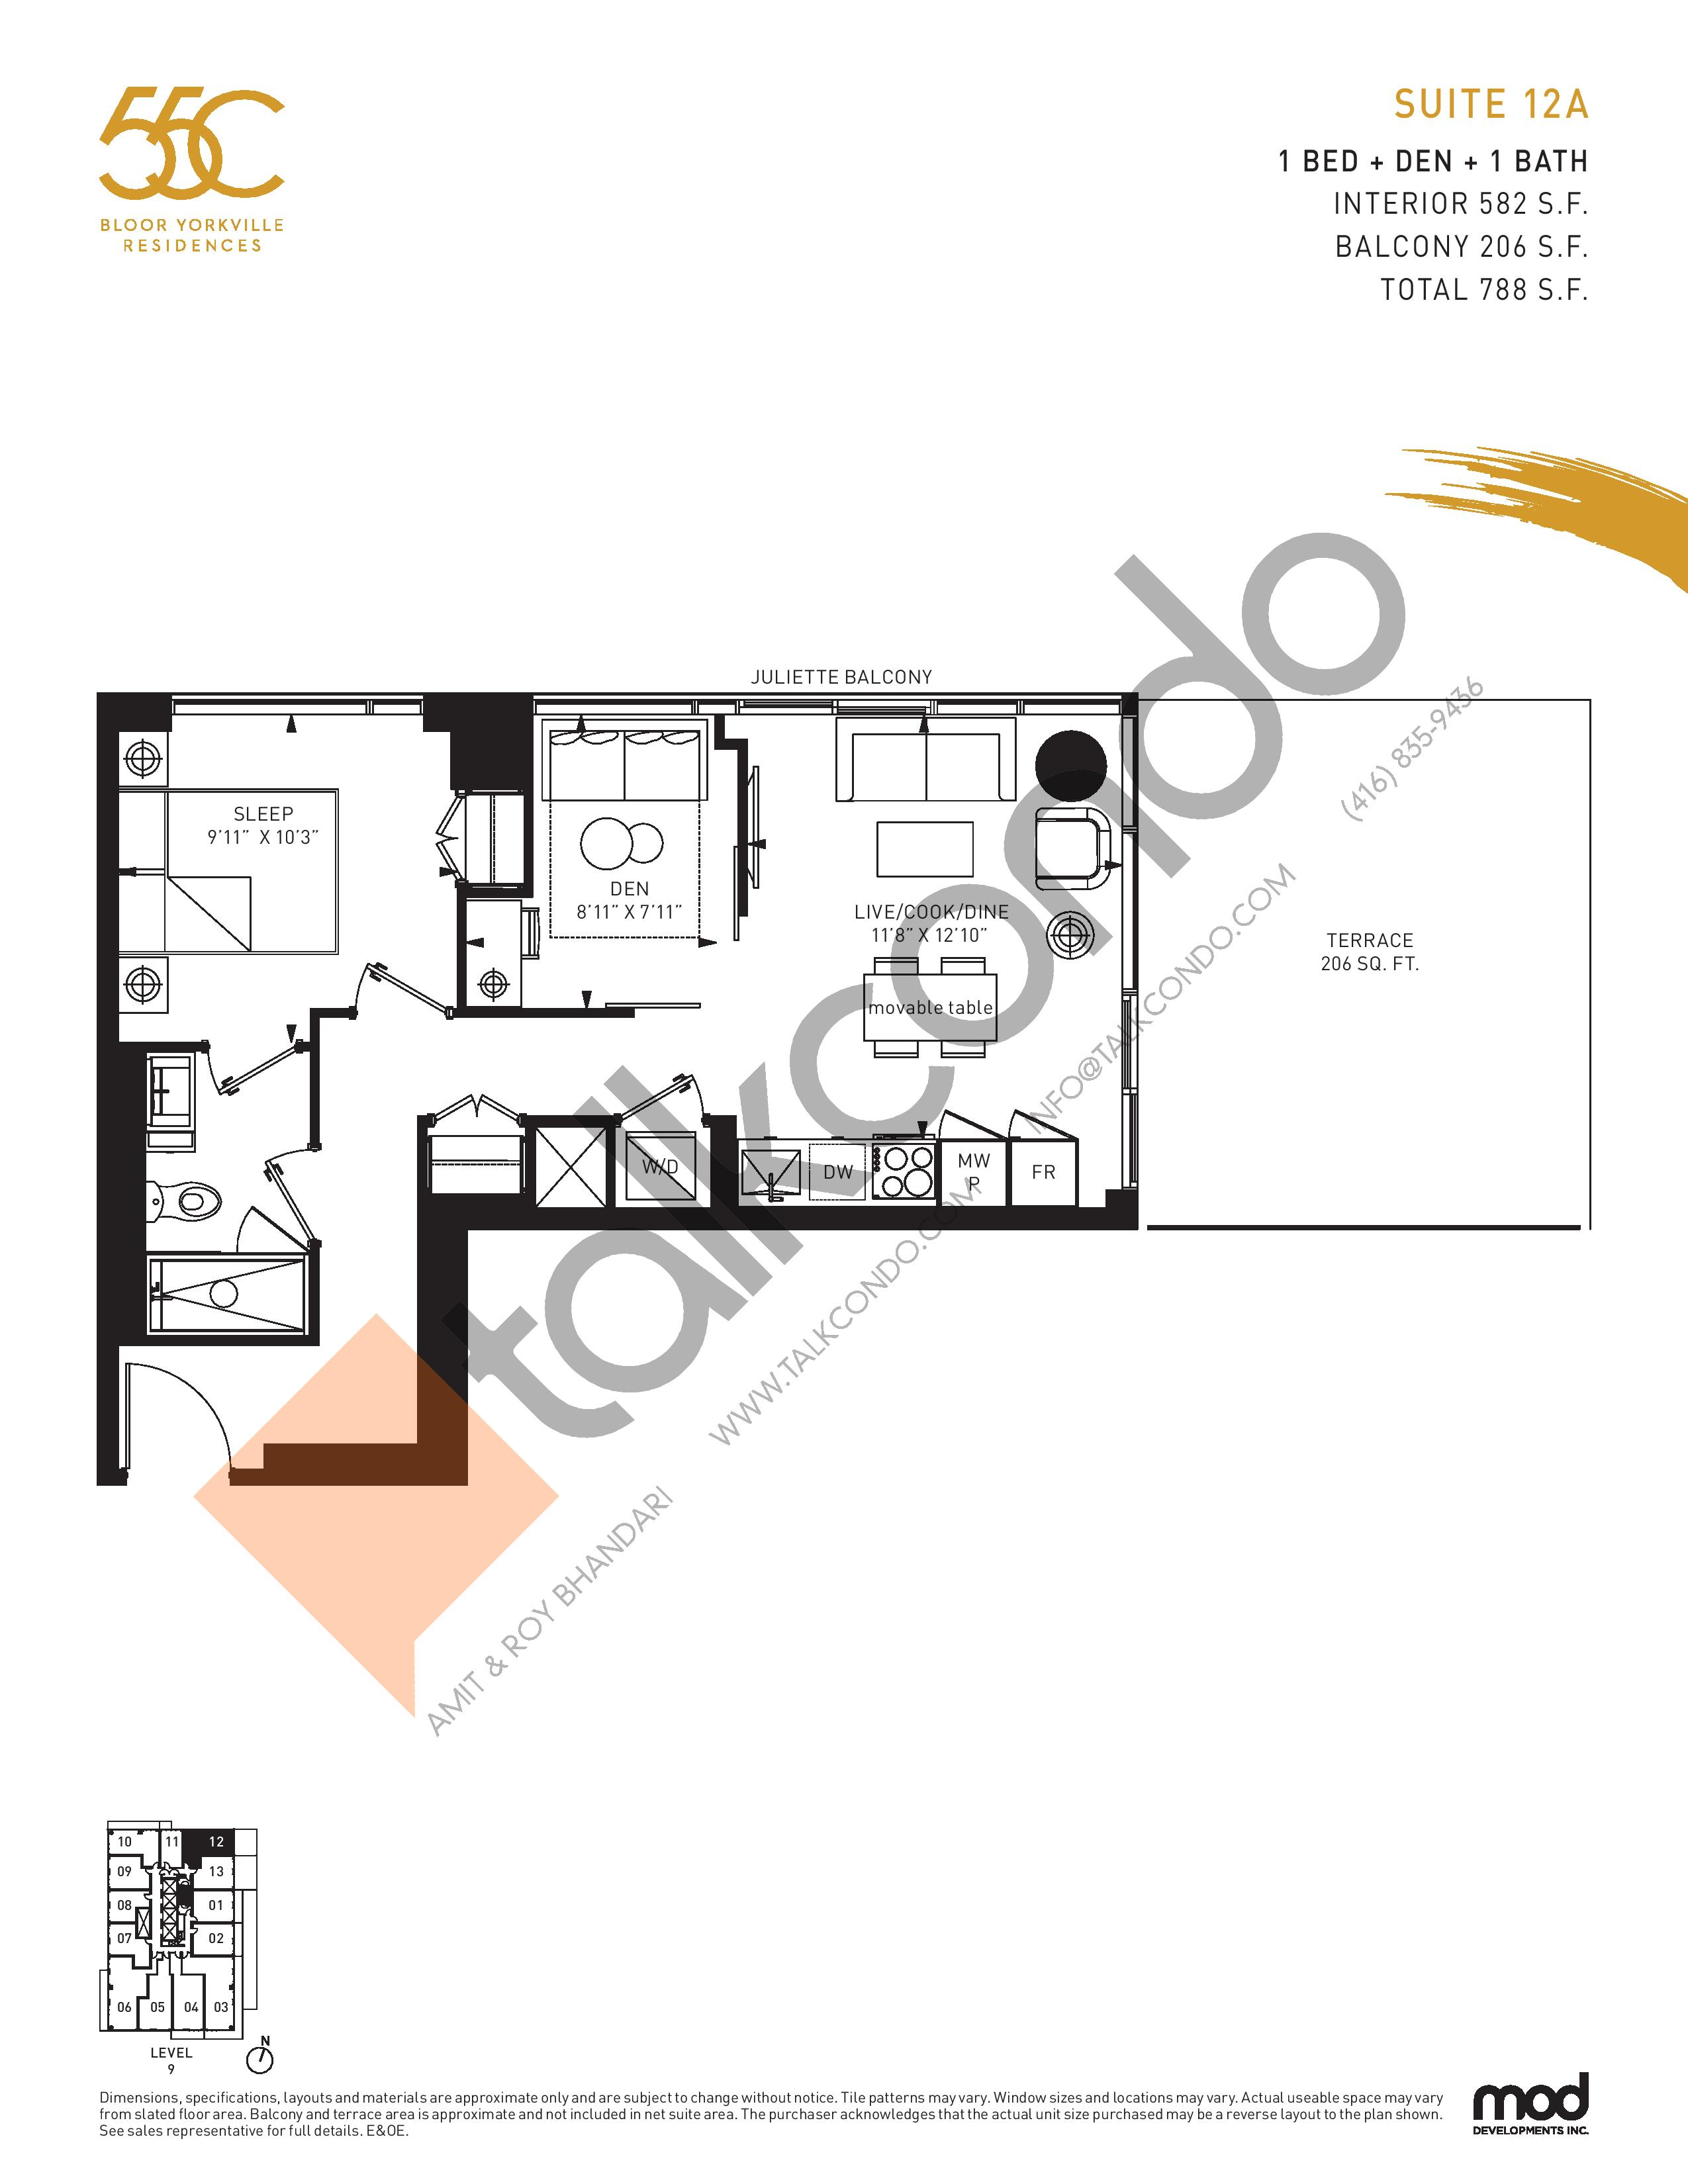 Suite 12A Floor Plan at 55C Condos - 582 sq.ft